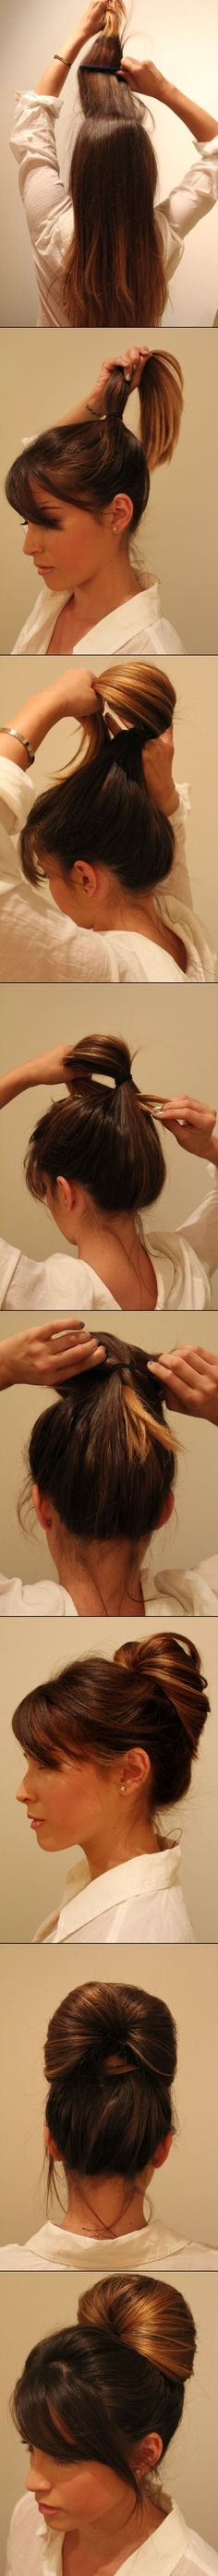 Easy Updo. So great for when you're too lazy to wash your hair and need a quick style.